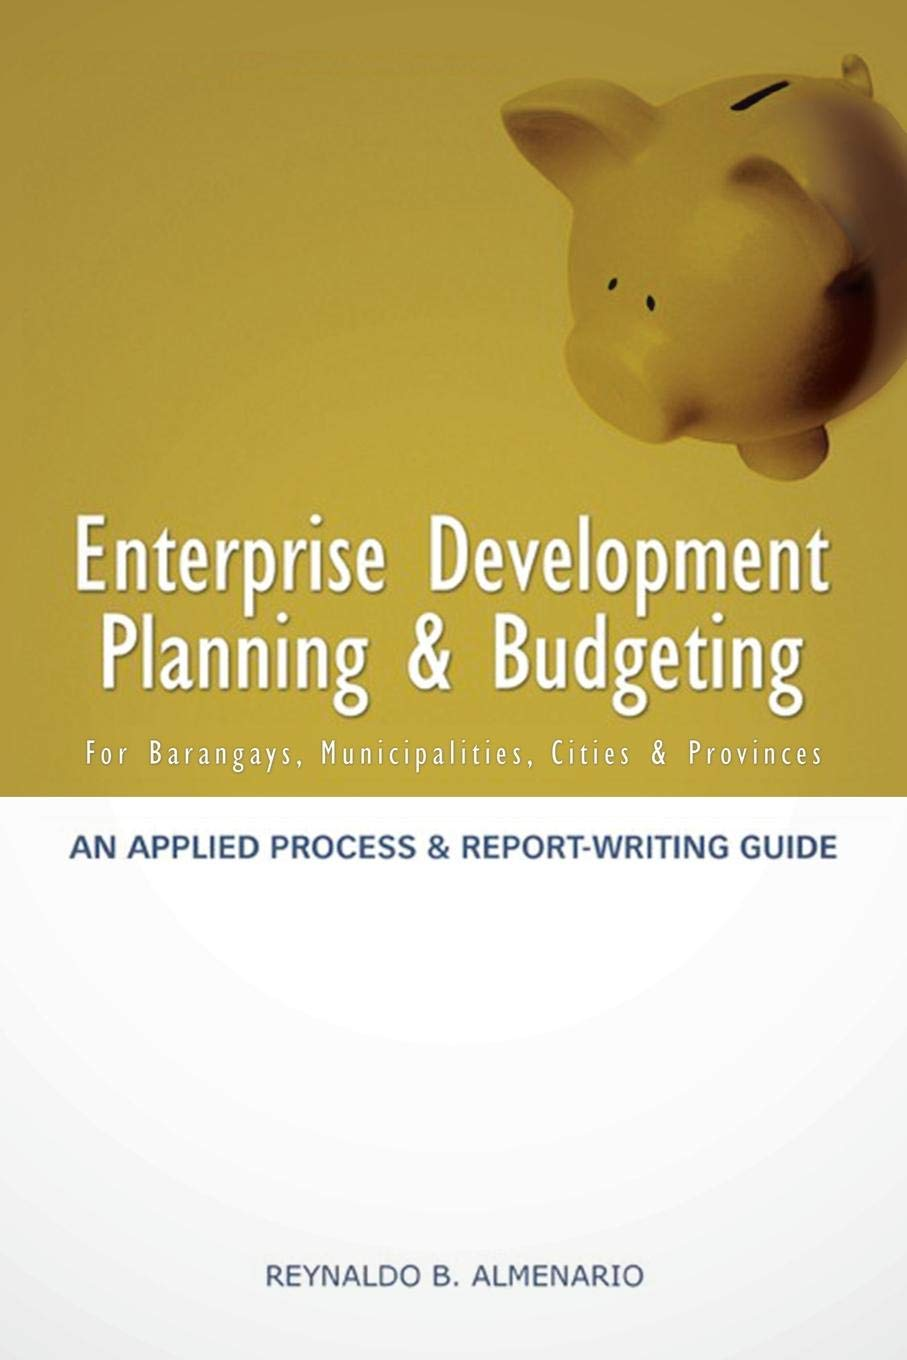 Enterprise Development Planning & Budgeting: An Applied